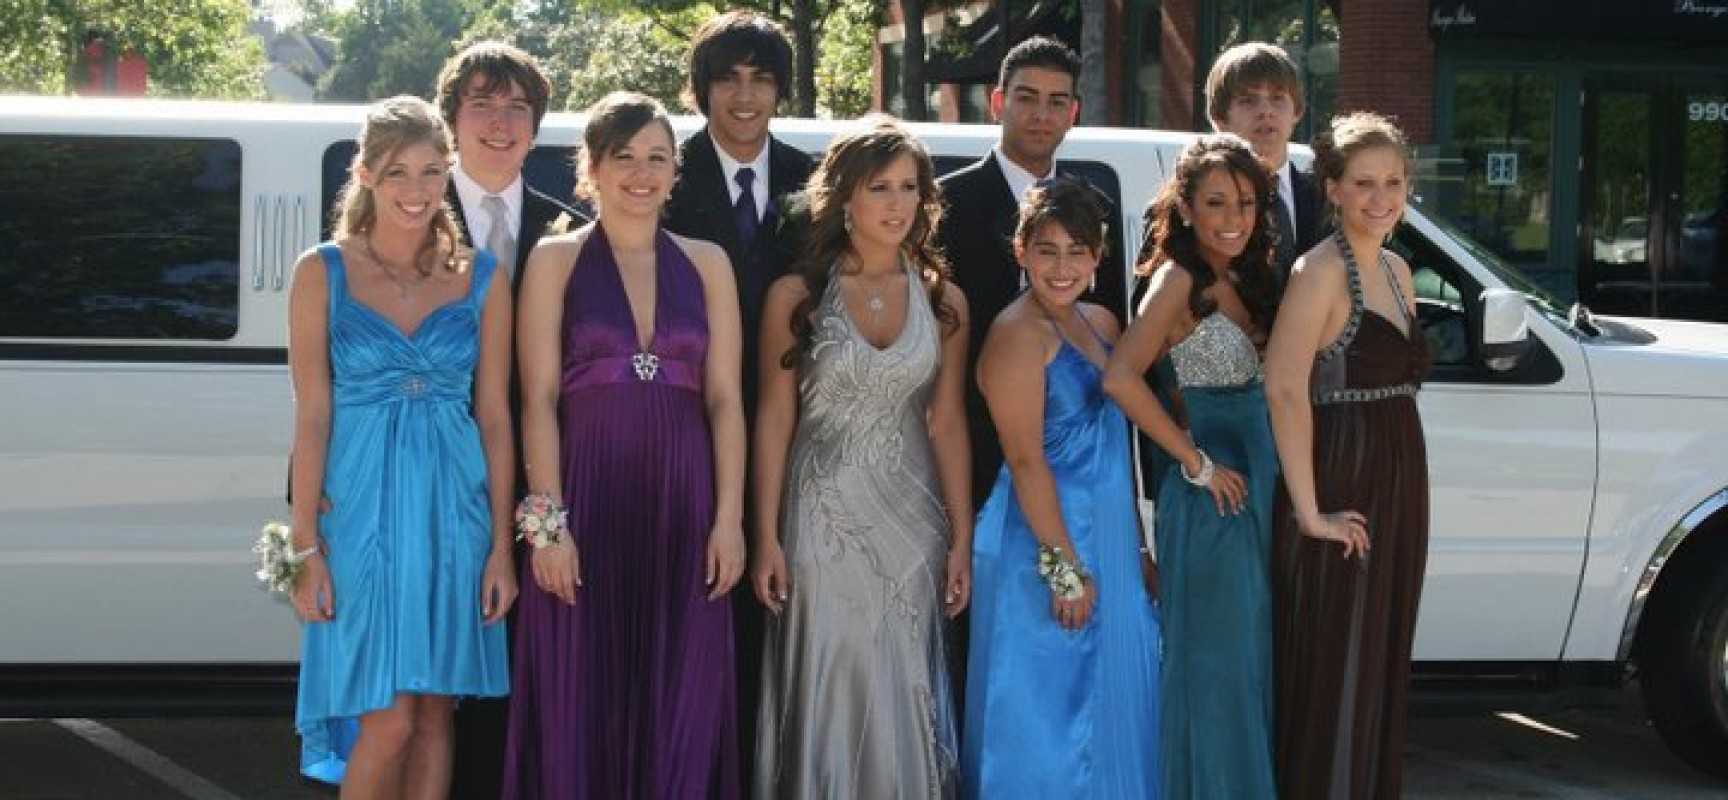 Over 400 pupils attend school prom fair in Stafford